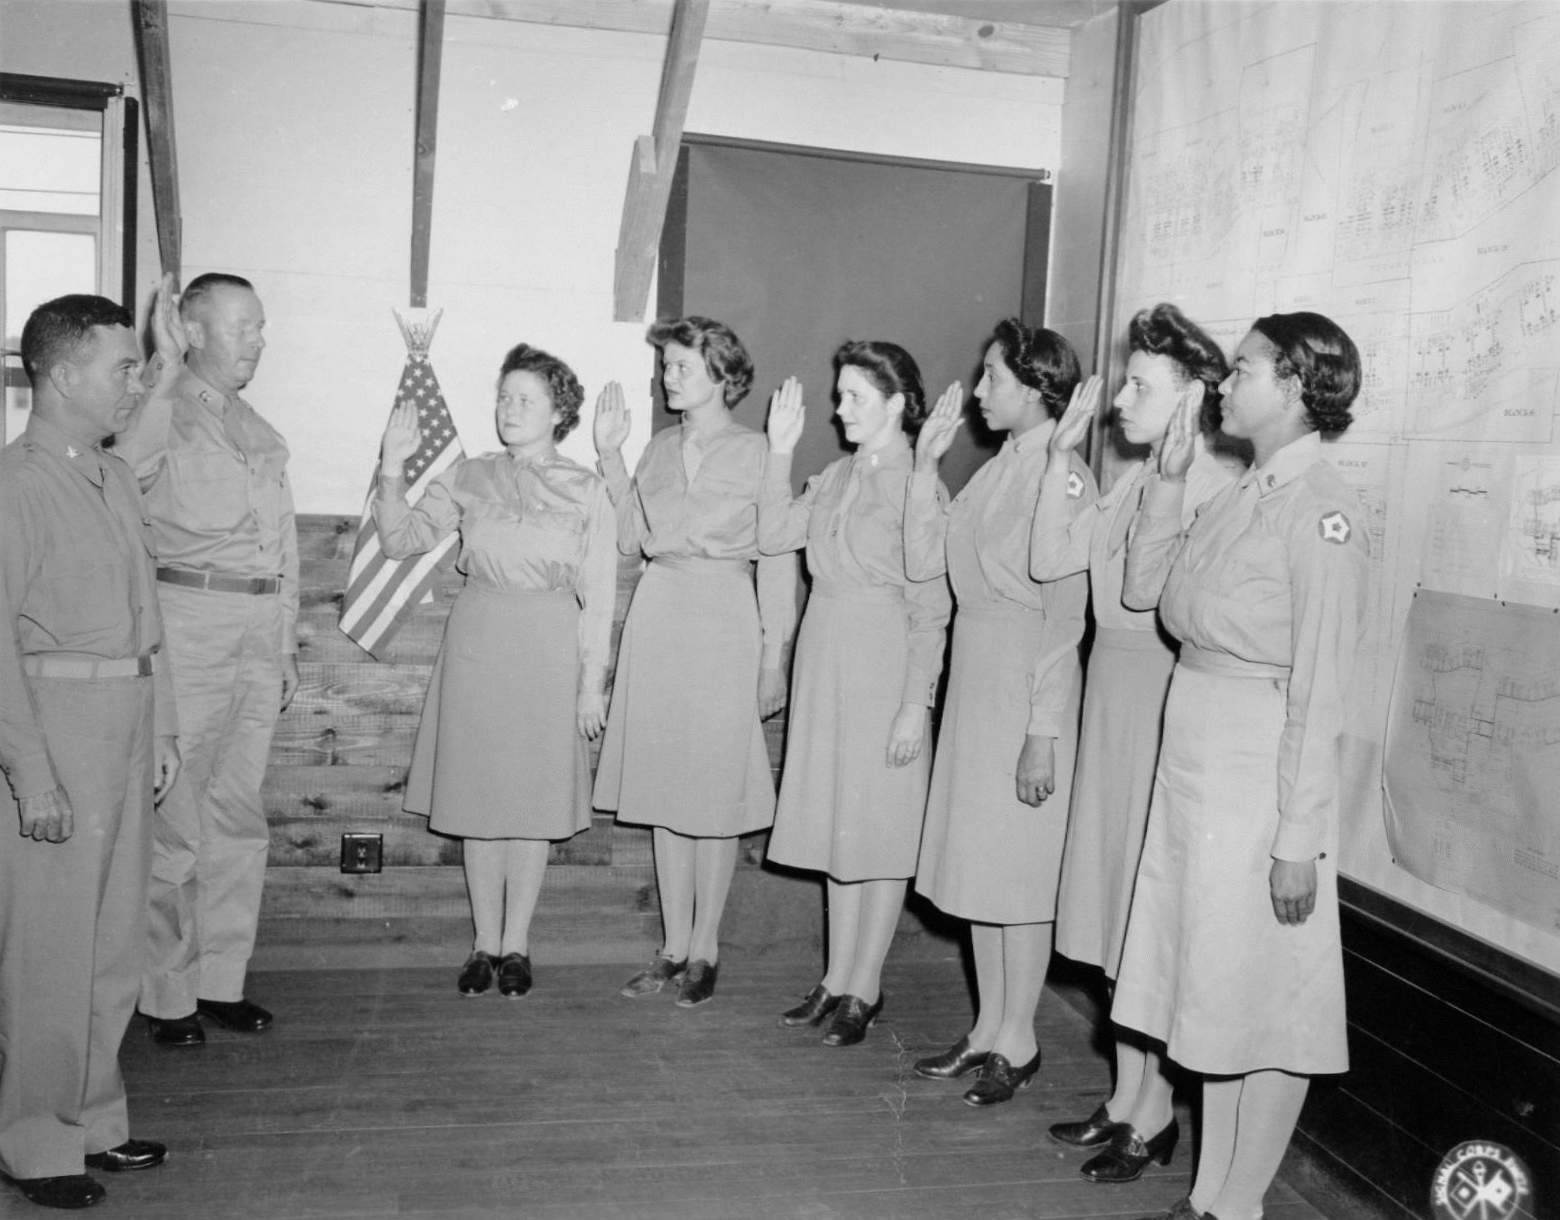 Swearing In of Six WAC Officers during WWII